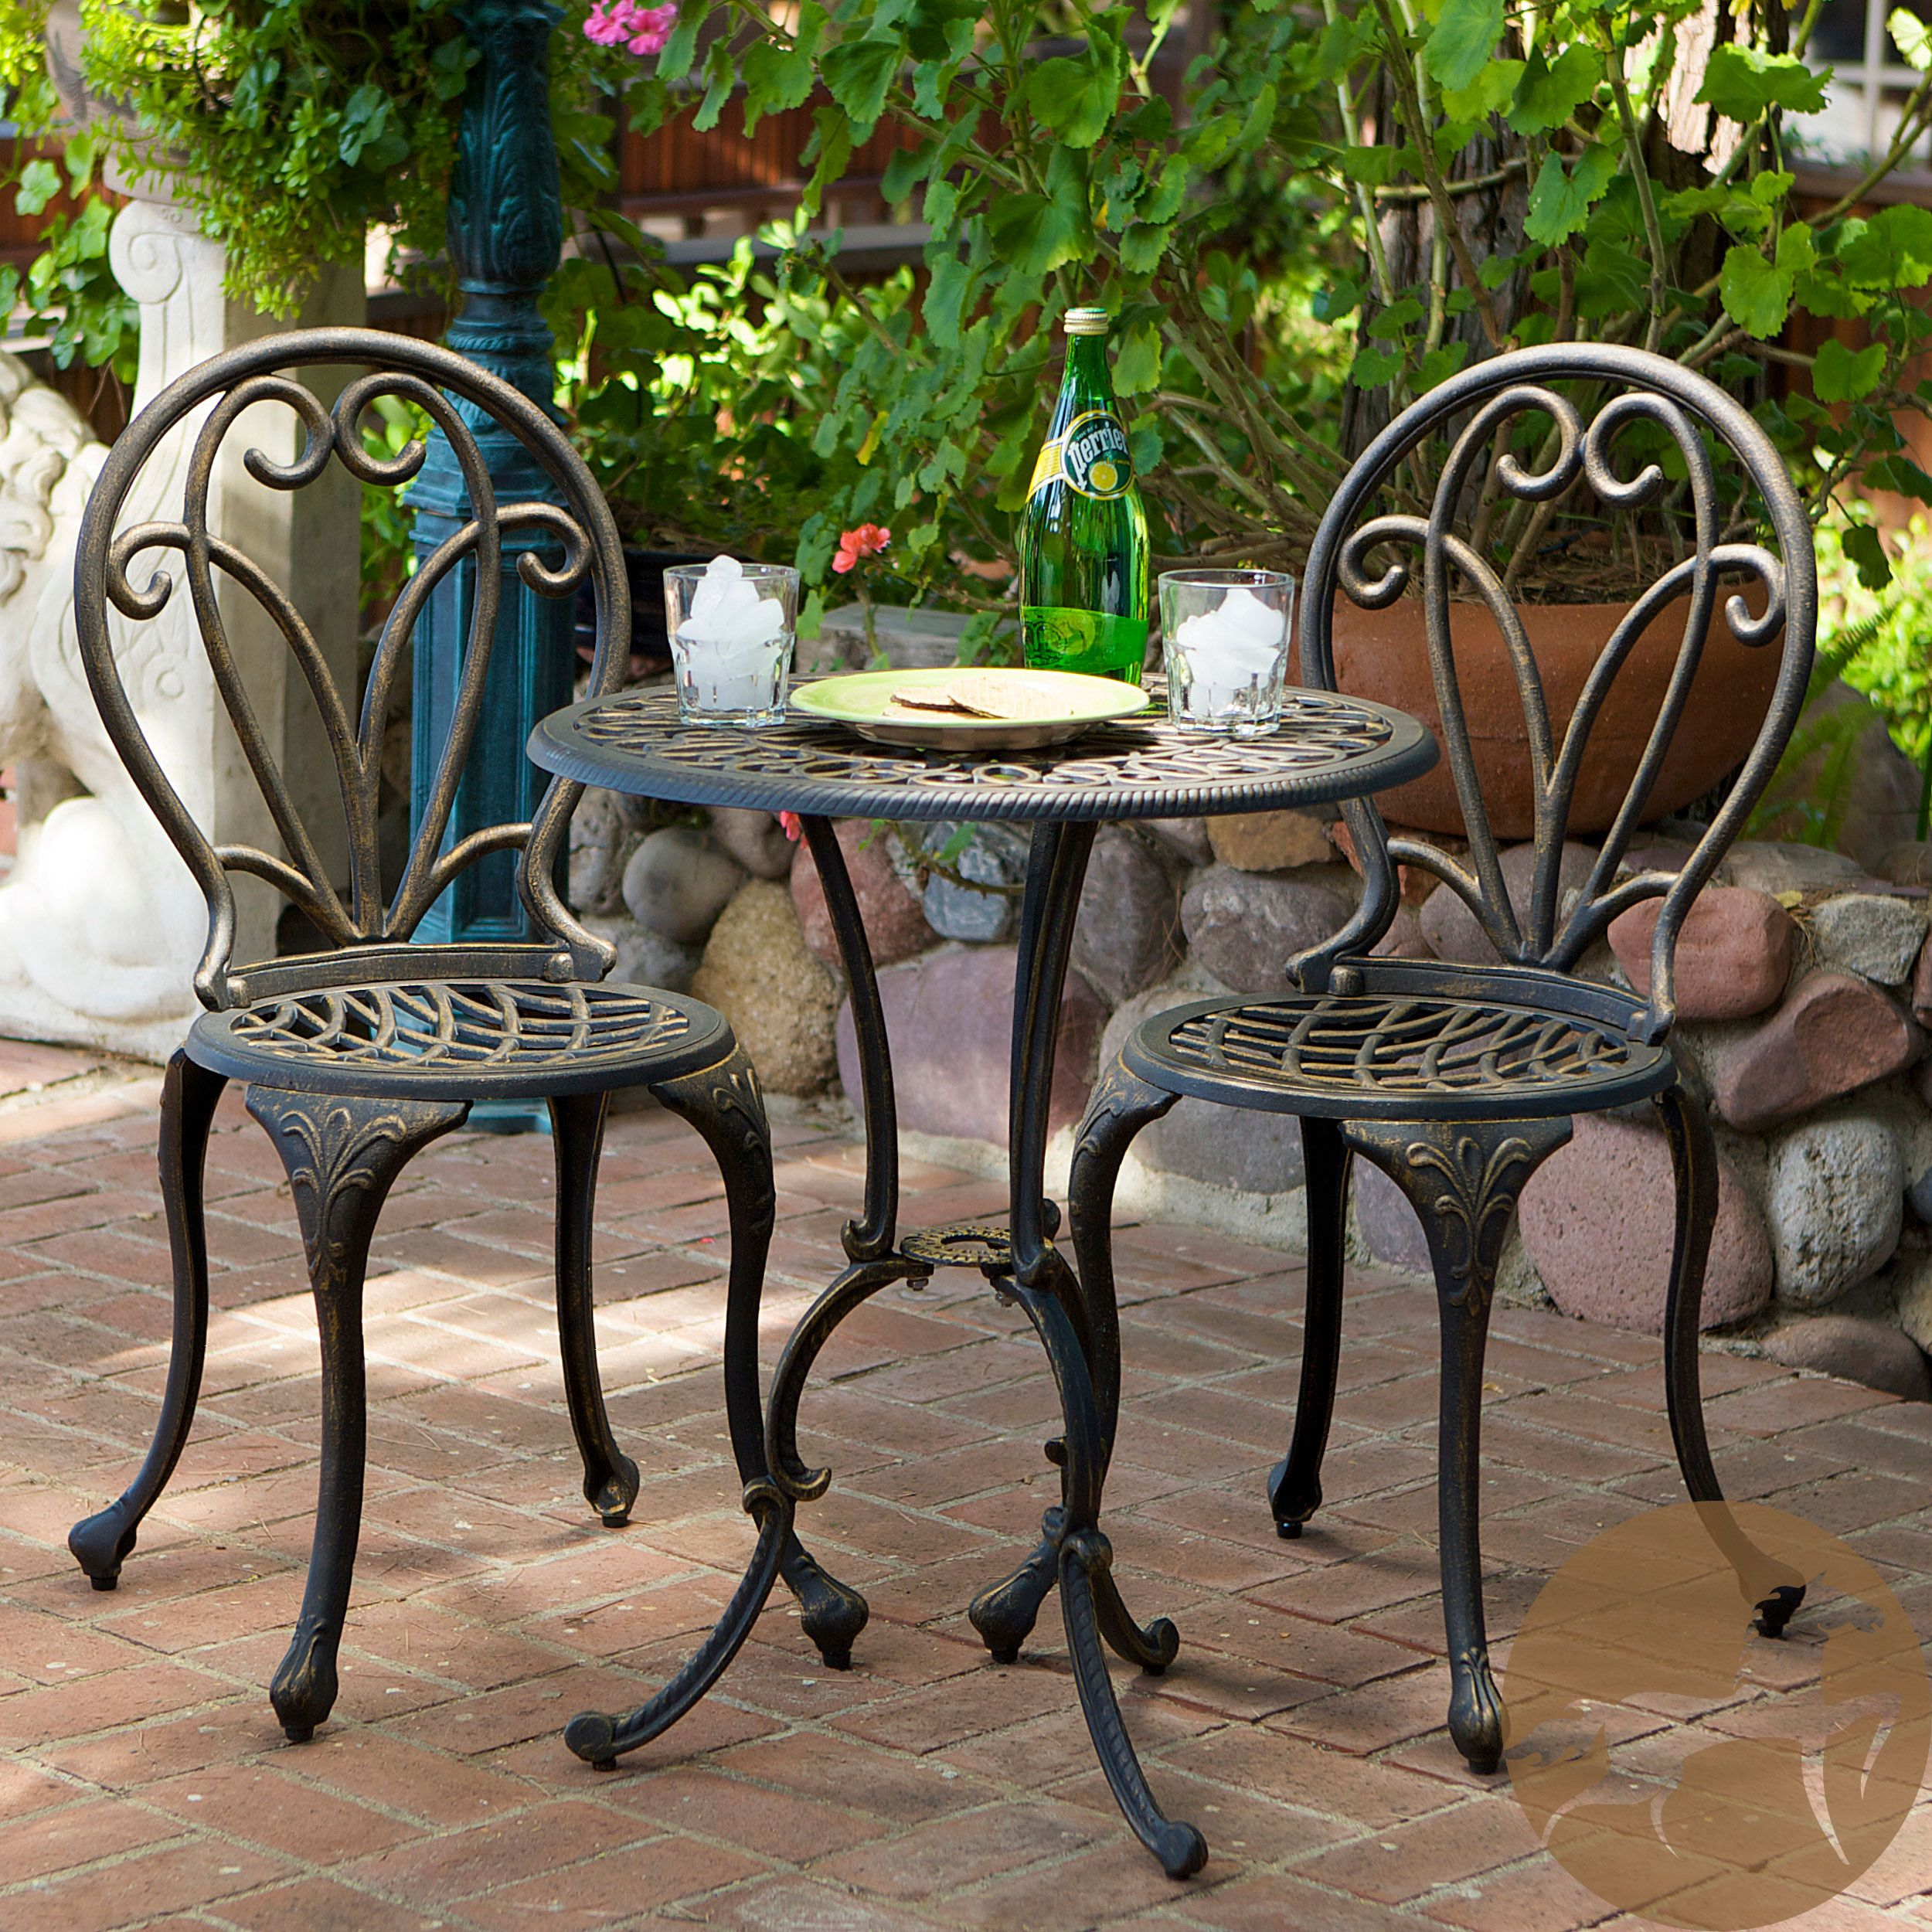 This French-style outdoor bistro set will lend classy style to your patio. The set is constructed of cast aluminum in dark gold color with cast iron legs ... & This French-style outdoor bistro set will lend classy style to your ...